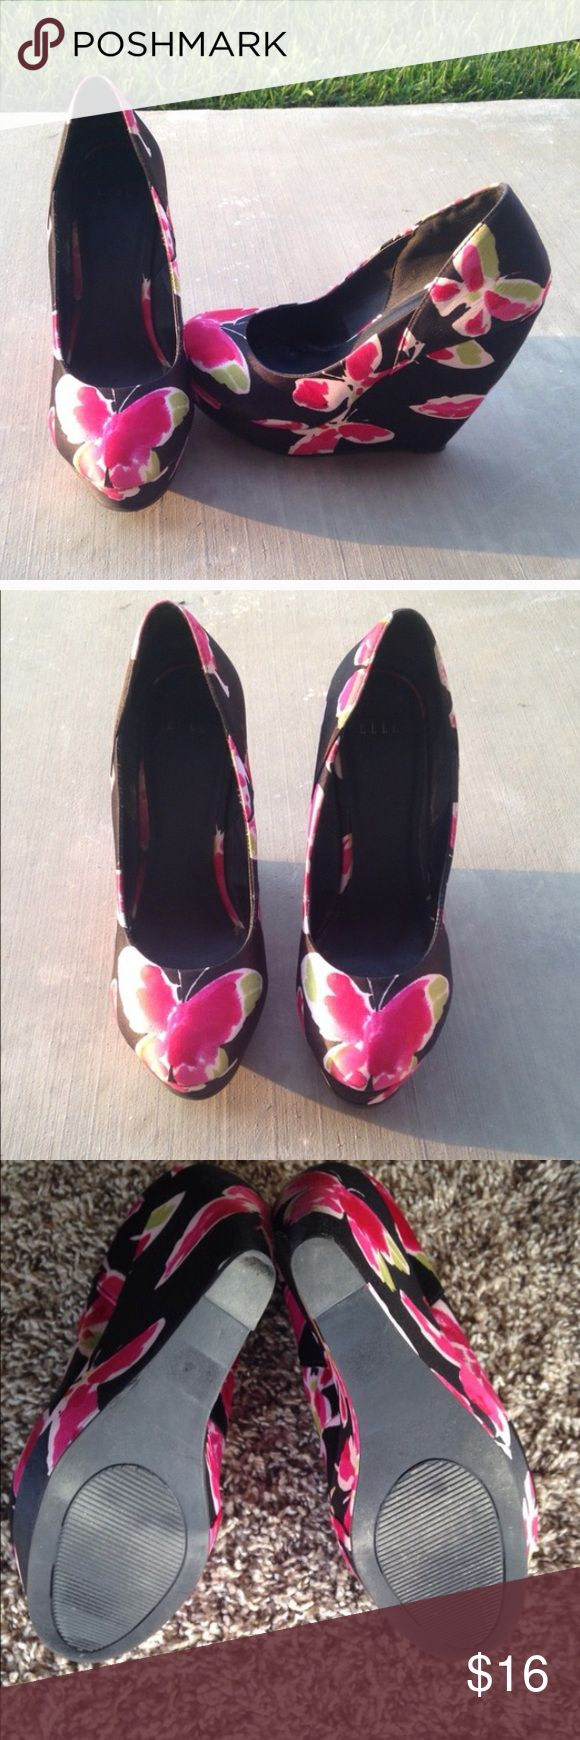 """Elle Butterfly Wedges Beautiful and vibrant. Butterfly pattern wedges by Elle in great used condition. Aprox 5"""" wedge. Elle Shoes Wedges"""